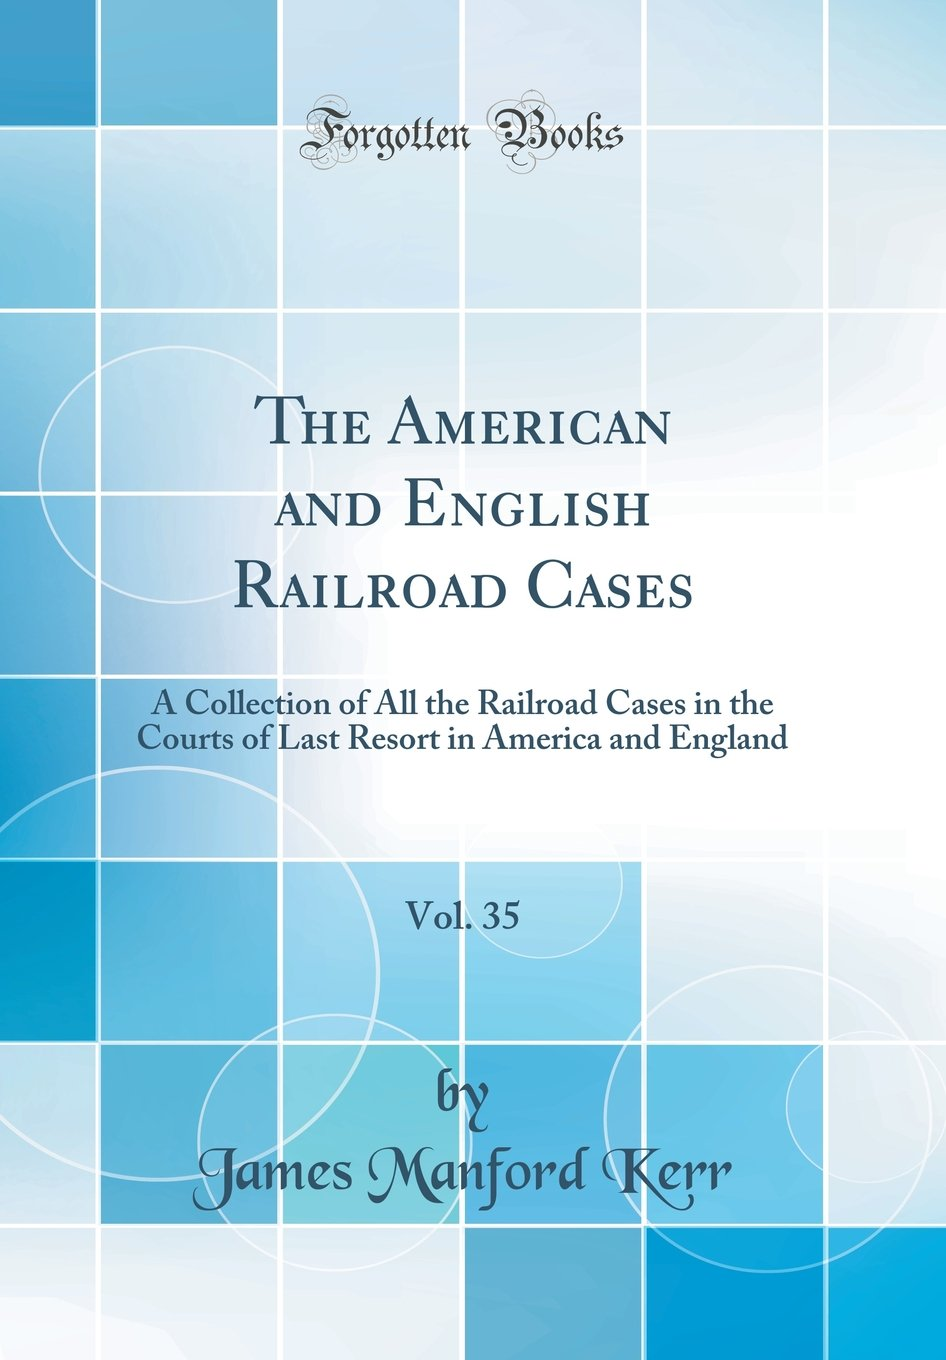 The American and English Railroad Cases, Vol. 35: A Collection of All the Railroad Cases in the Courts of Last Resort in America and England (Classic Reprint) PDF